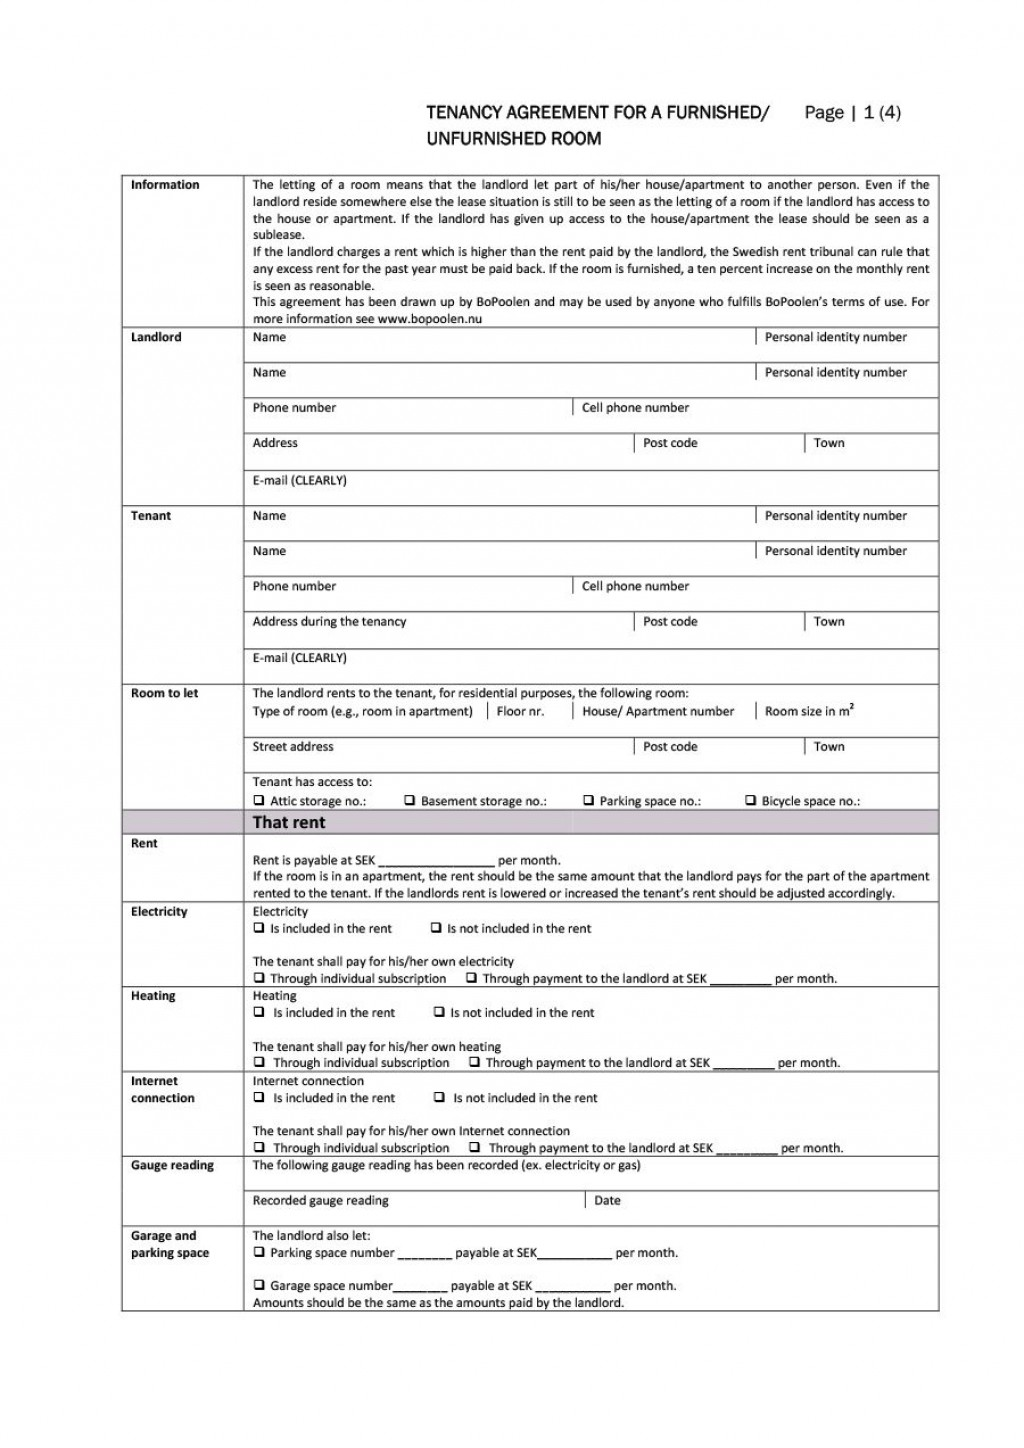 004 Top Room Rental Agreement Template Uk Free High Resolution  Word DocLarge